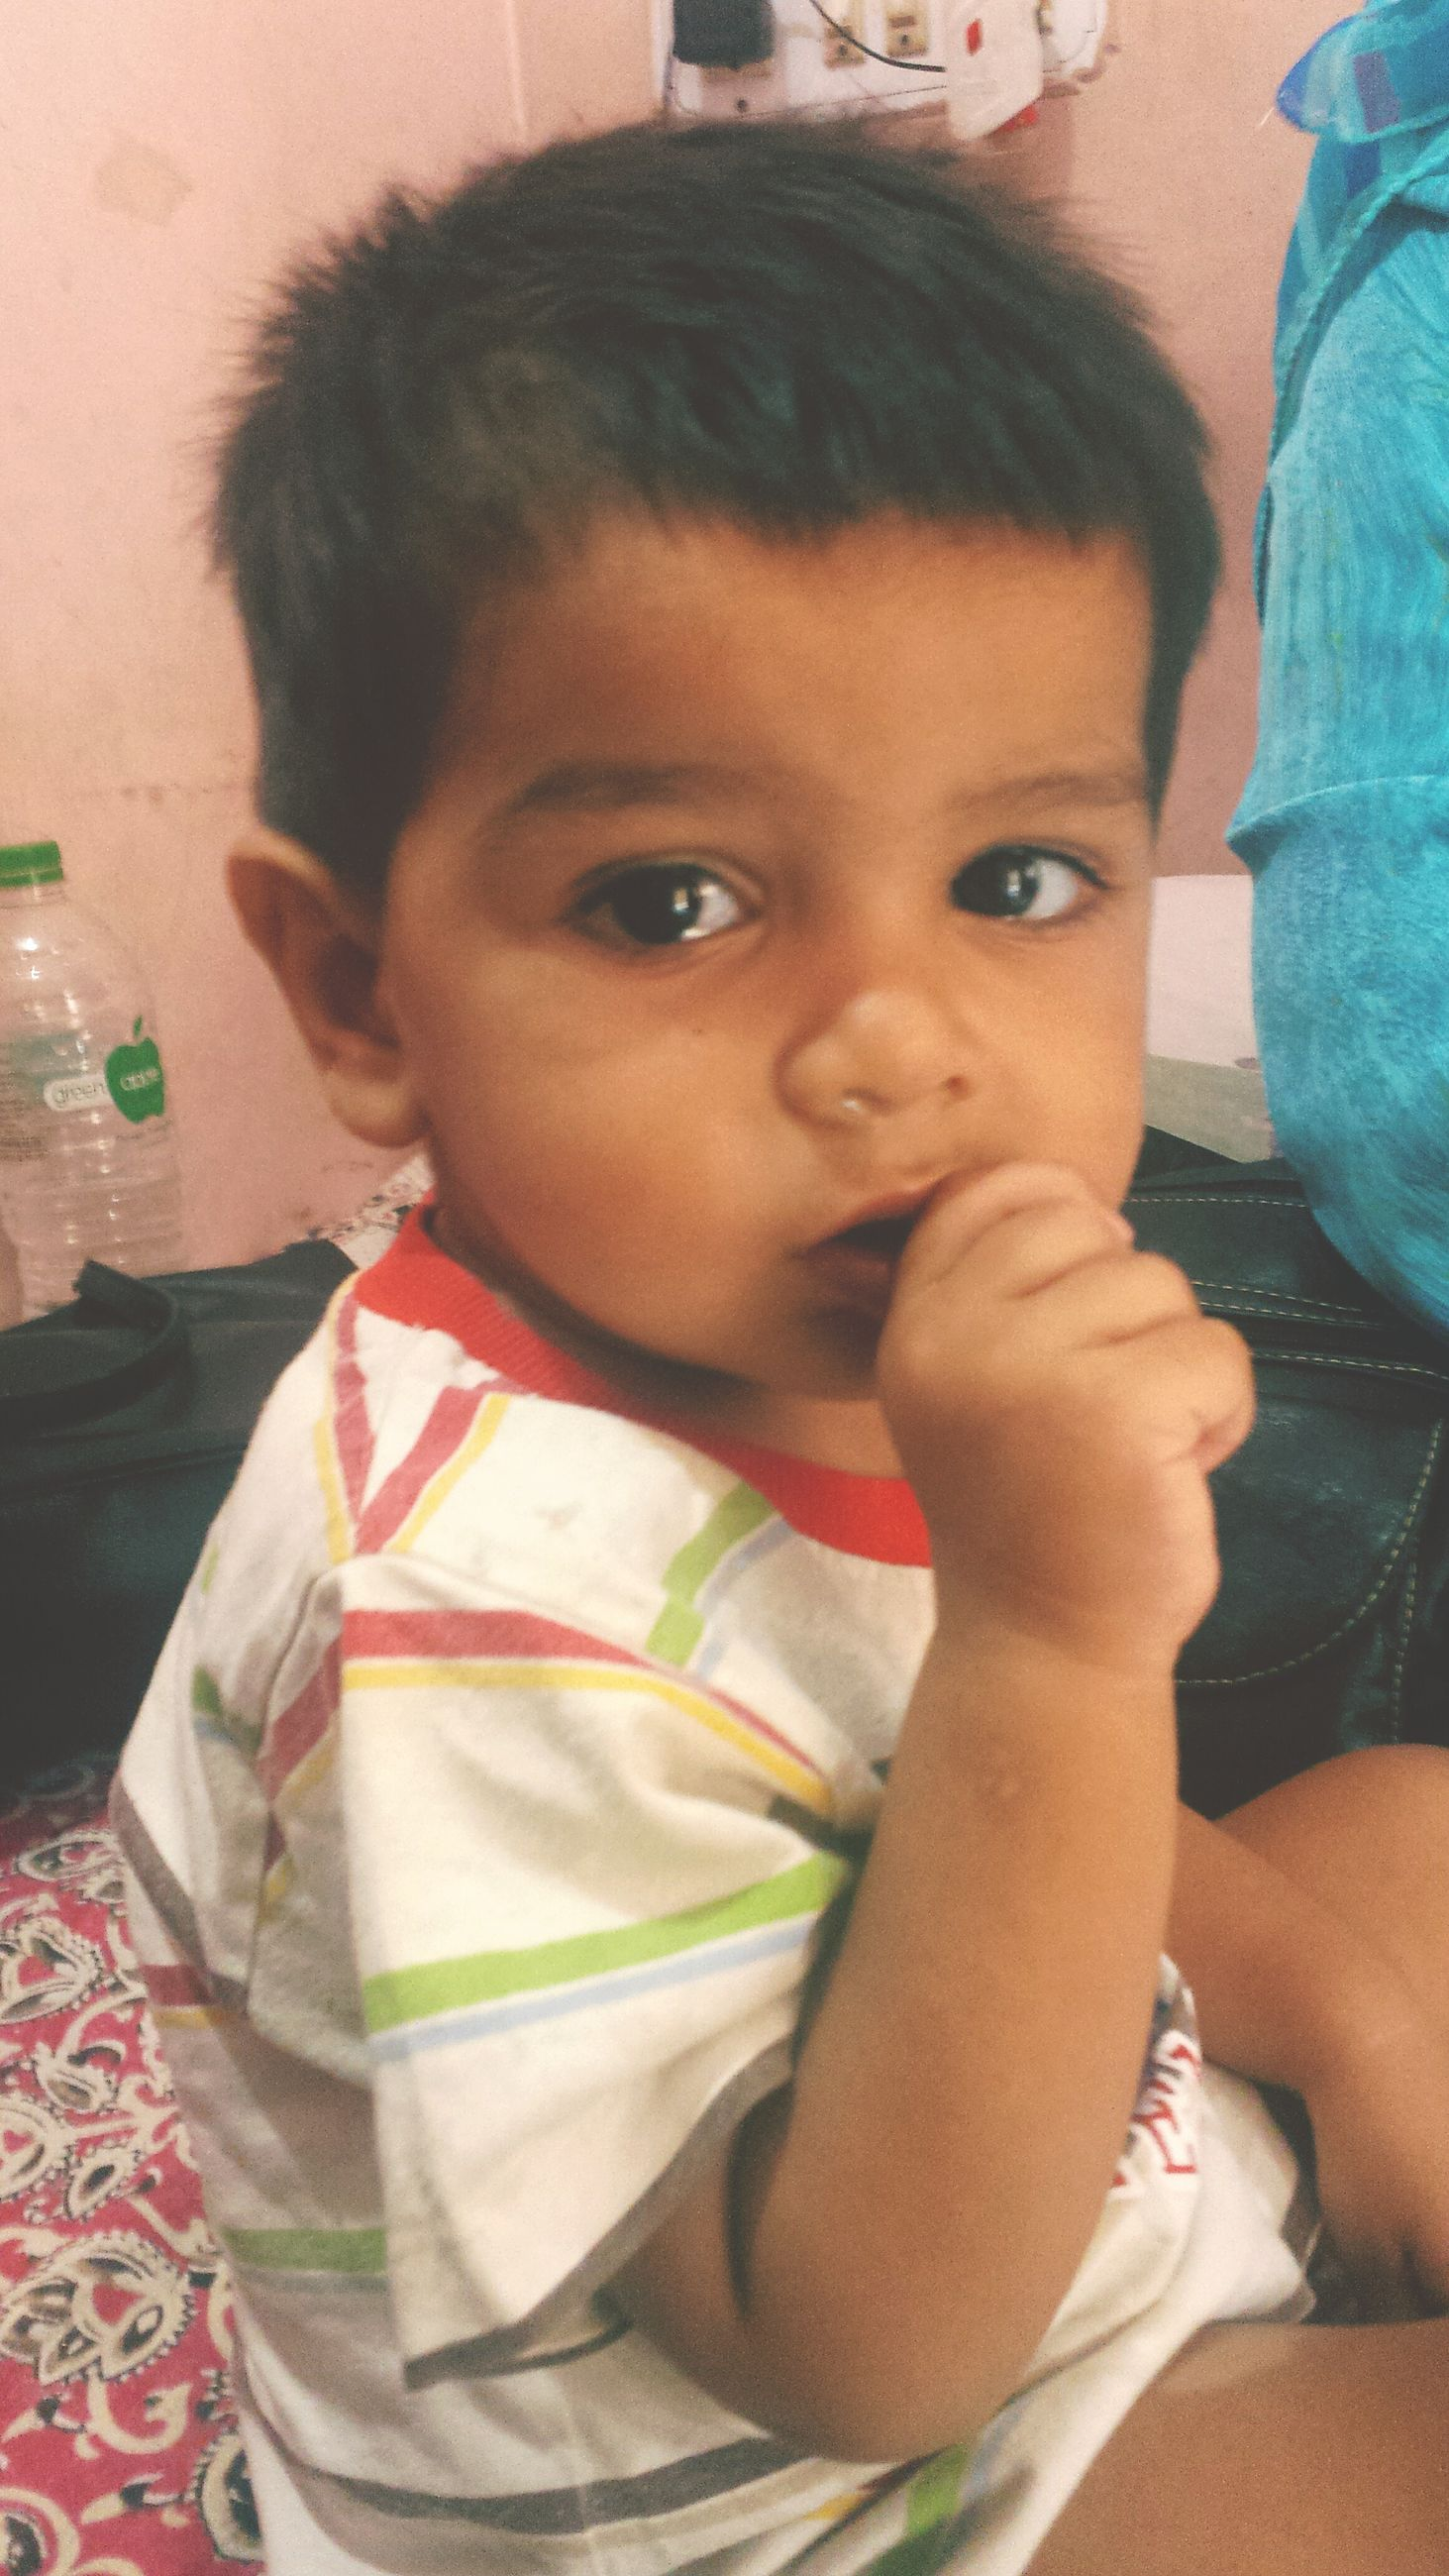 childhood, innocence, indoors, real people, cute, baby, one person, toddler, boys, home interior, looking at camera, close-up, portrait, day